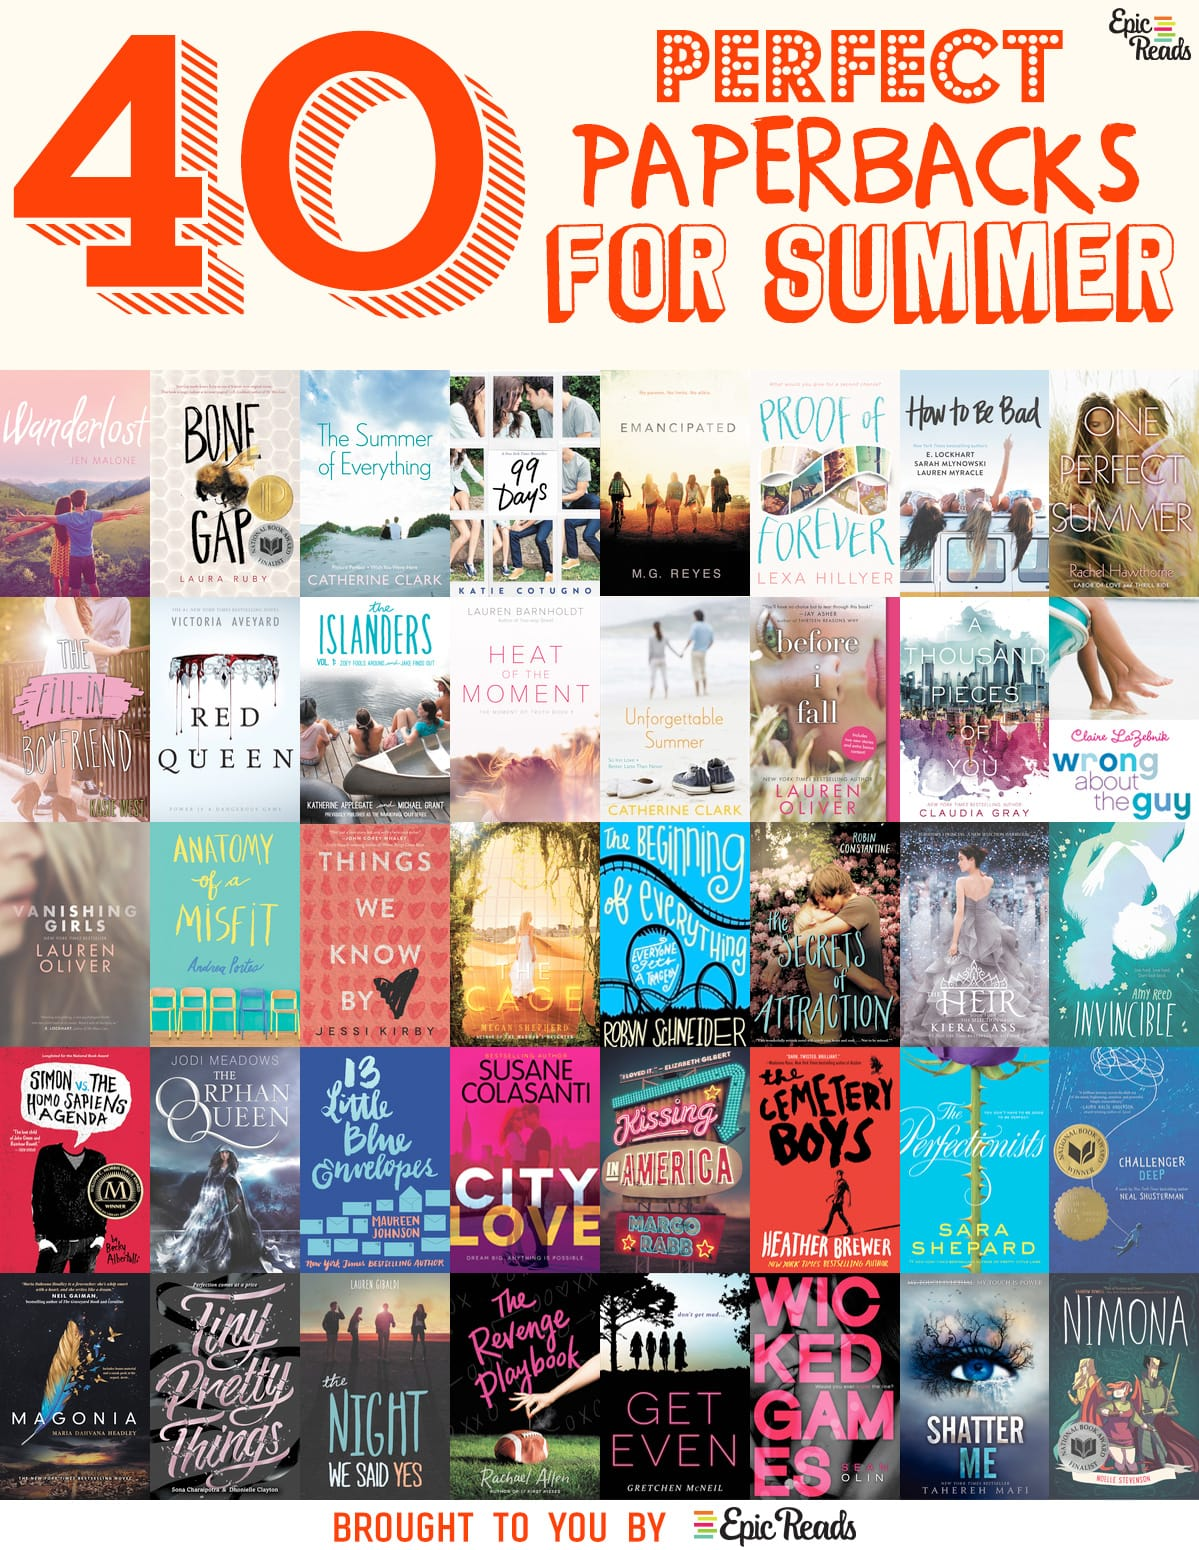 40 Perfect YA Paperbacks for Summer Reading - Recommended by Epic Reads